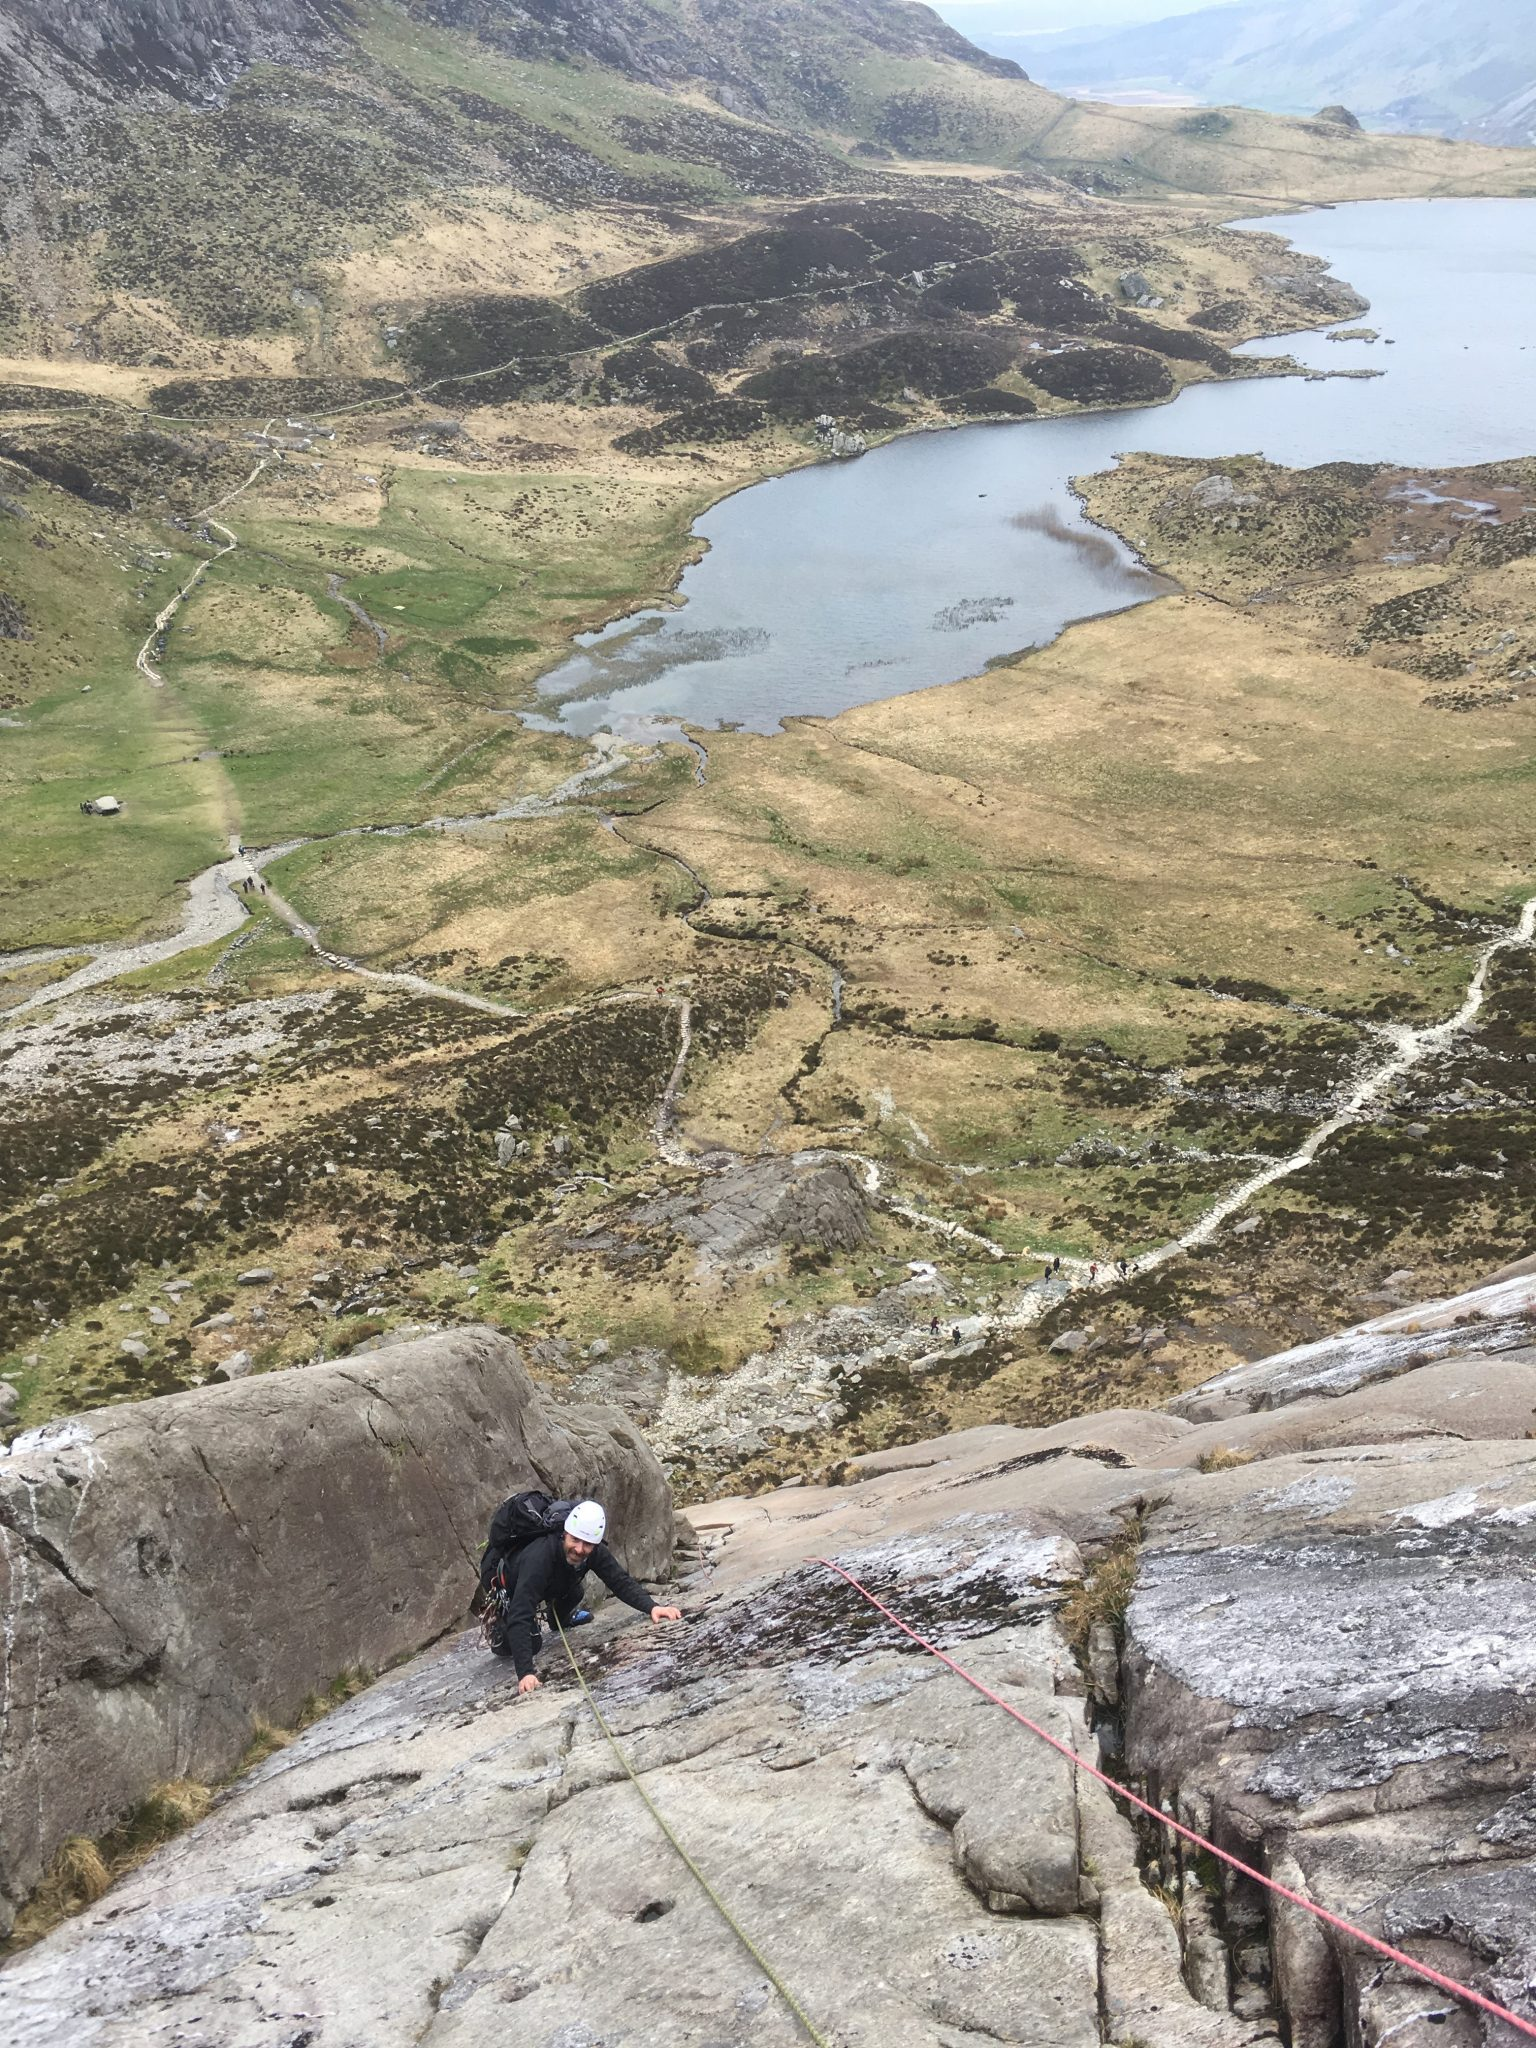 Guided rock climbing on Hope, Idwal Slabs in Snowdonia - also available in Yorkshire, the Peak District and Lake District